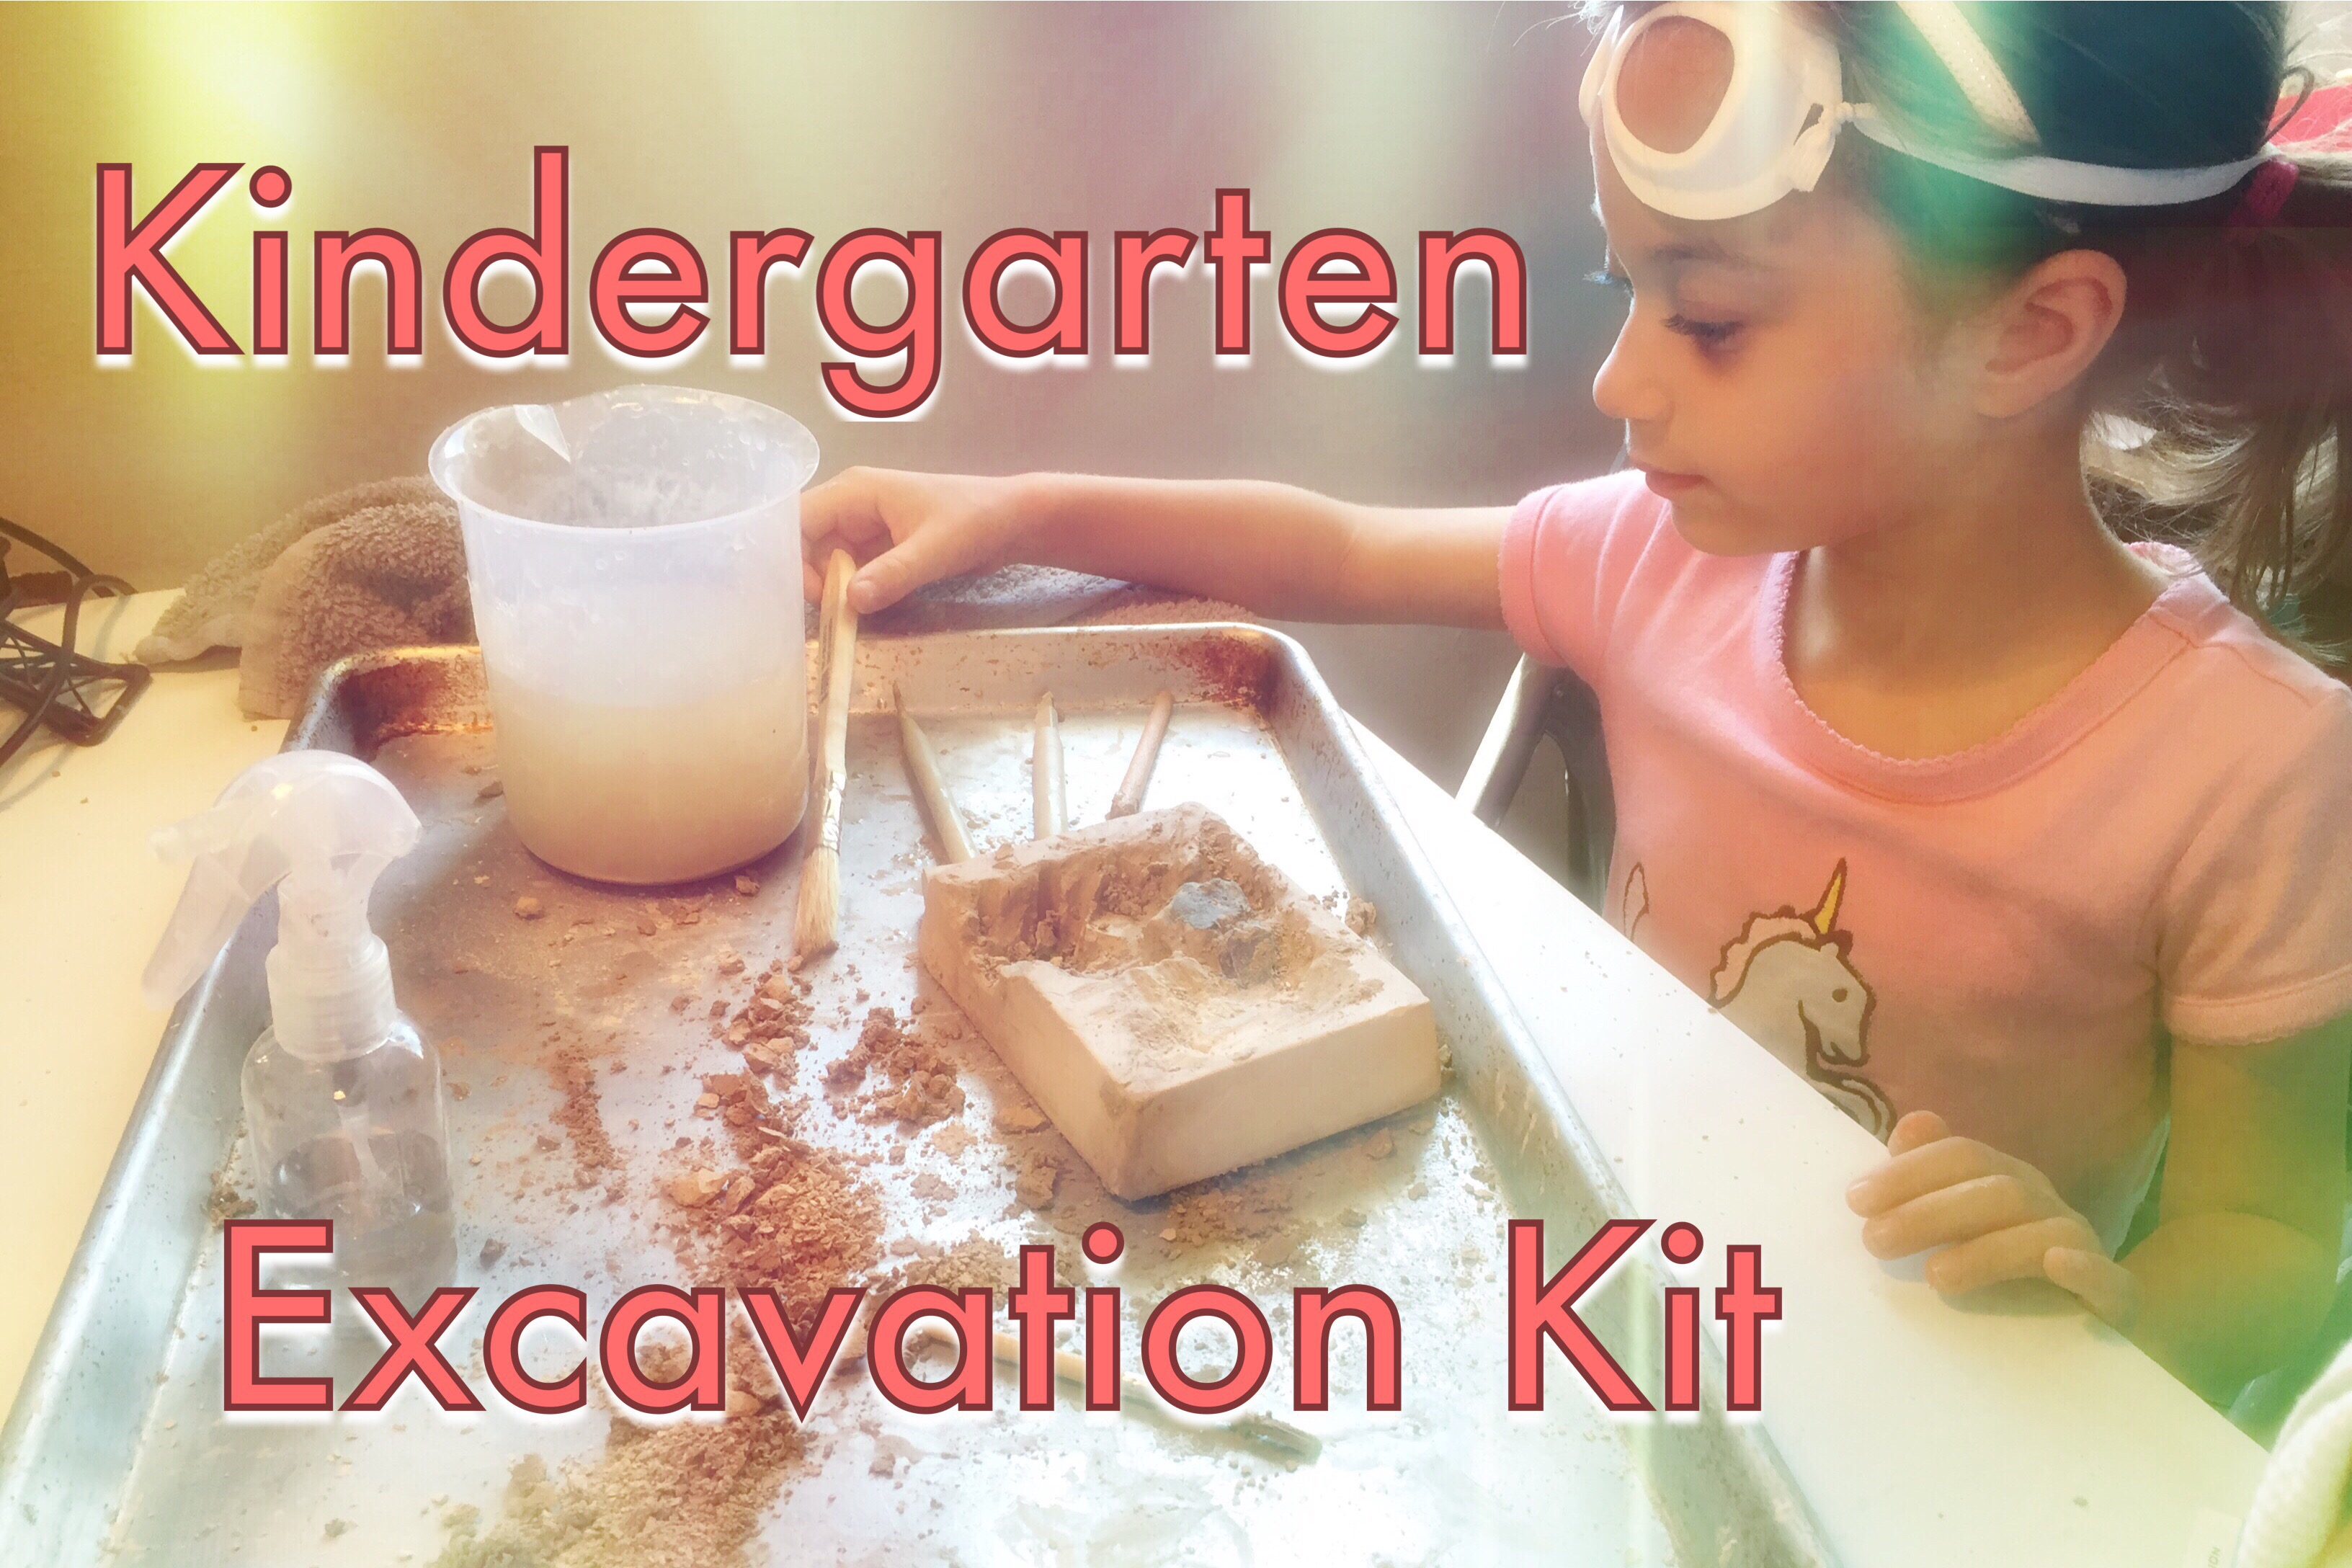 Rock Excavation Kit | Kindergarten